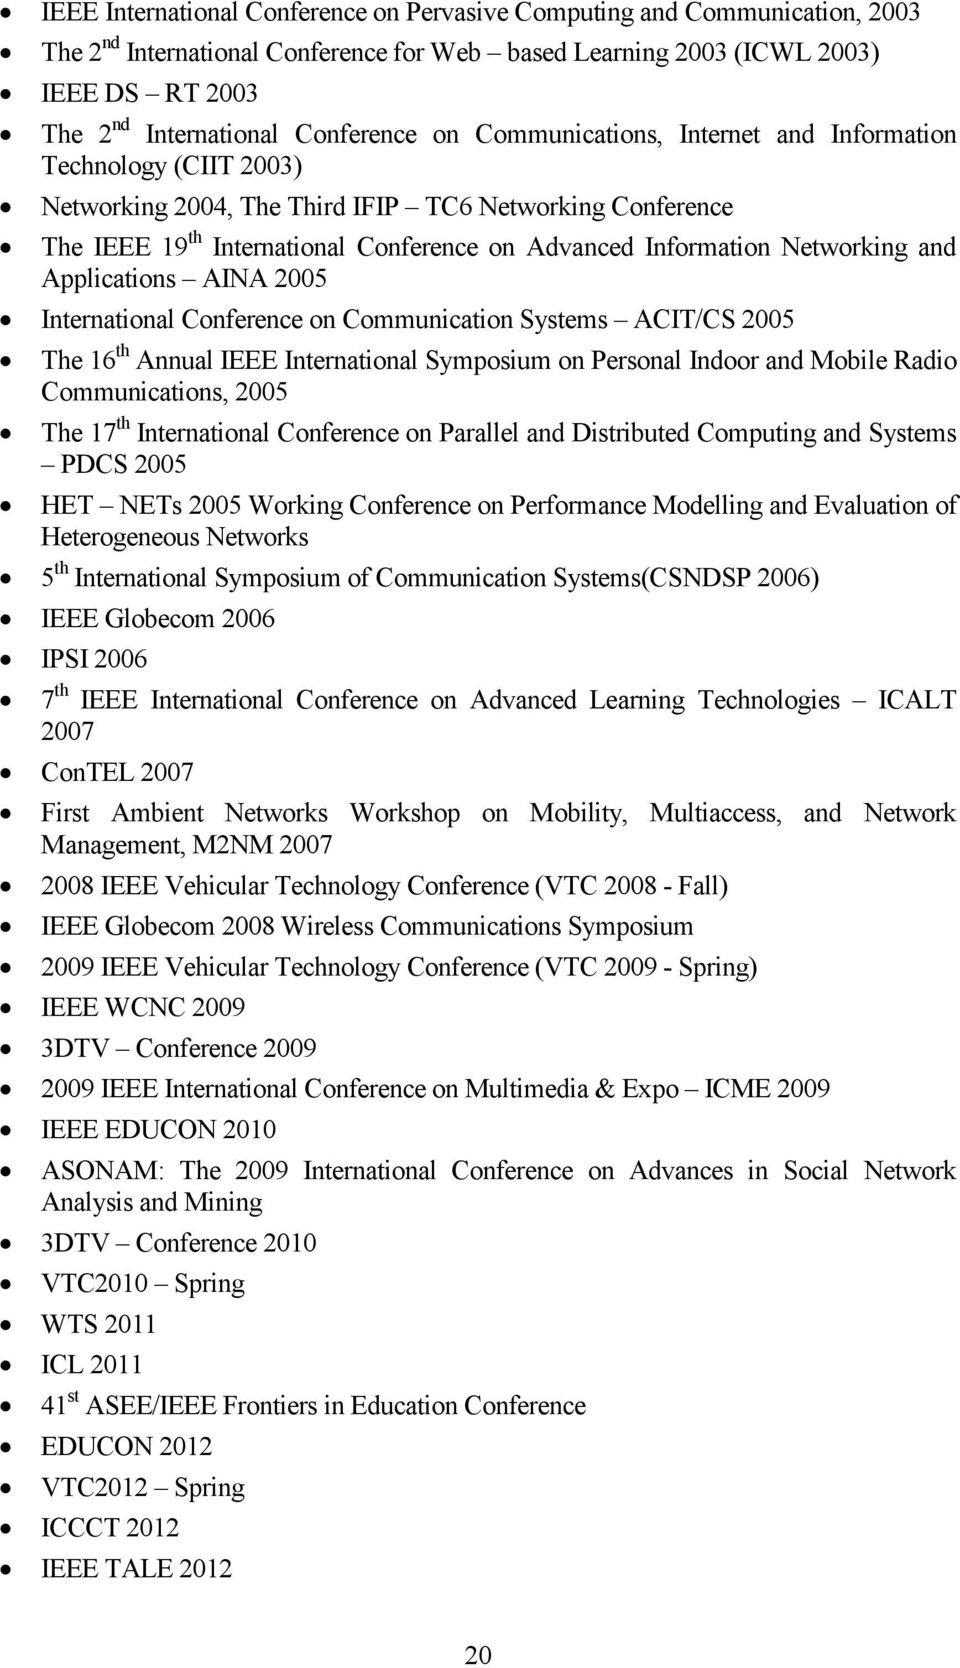 Networking and Applications AINA 2005 International Conference on Communication Systems ACIT/CS 2005 The 16 th Annual IEEE International Symposium on Personal Indoor and Mobile Radio Communications,